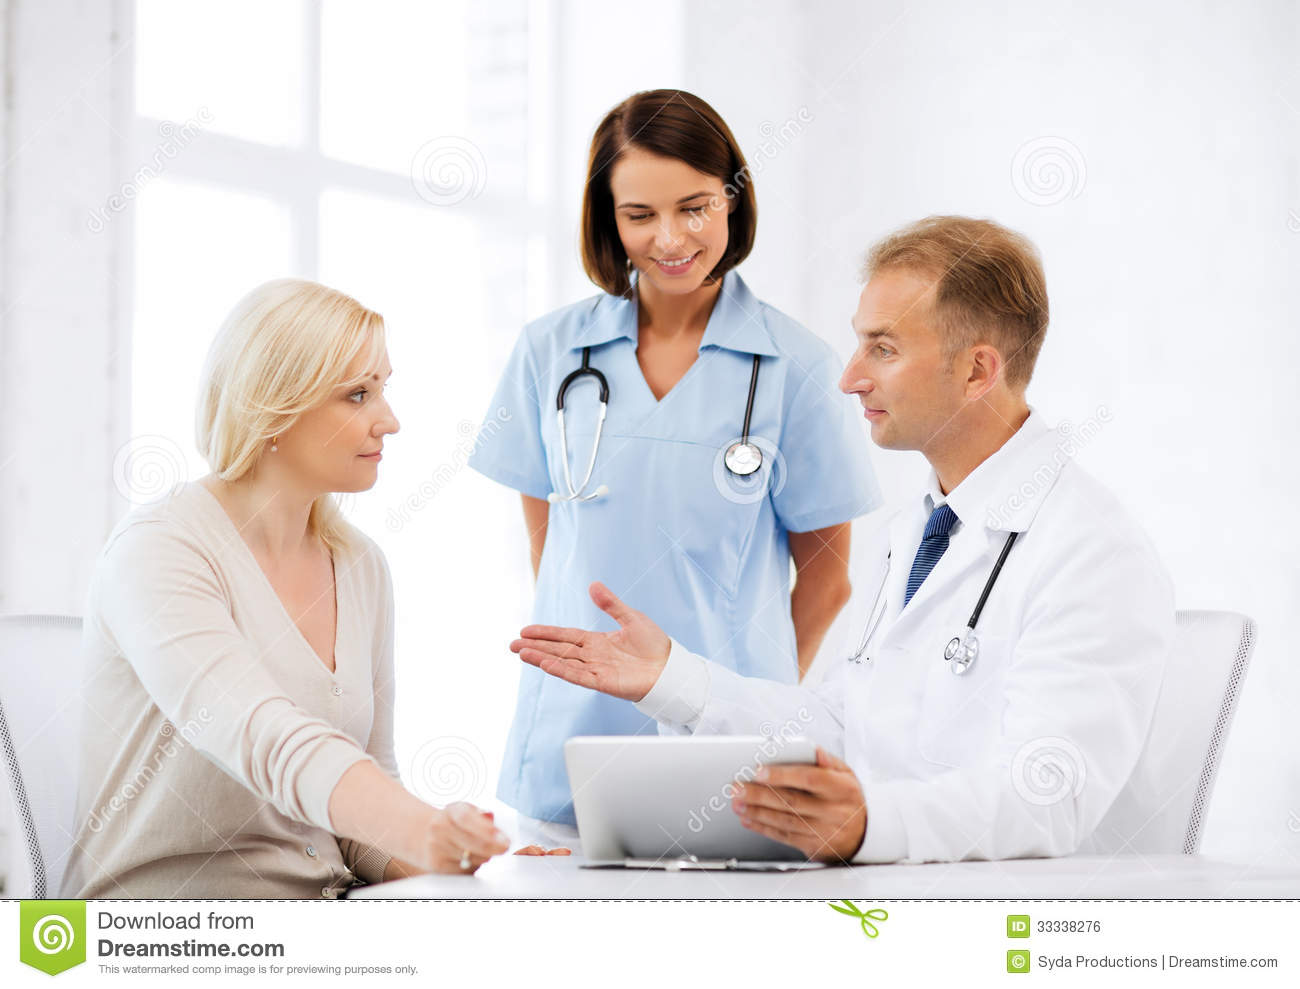 7 Free Stock Photos Medical Practice Patient & Images